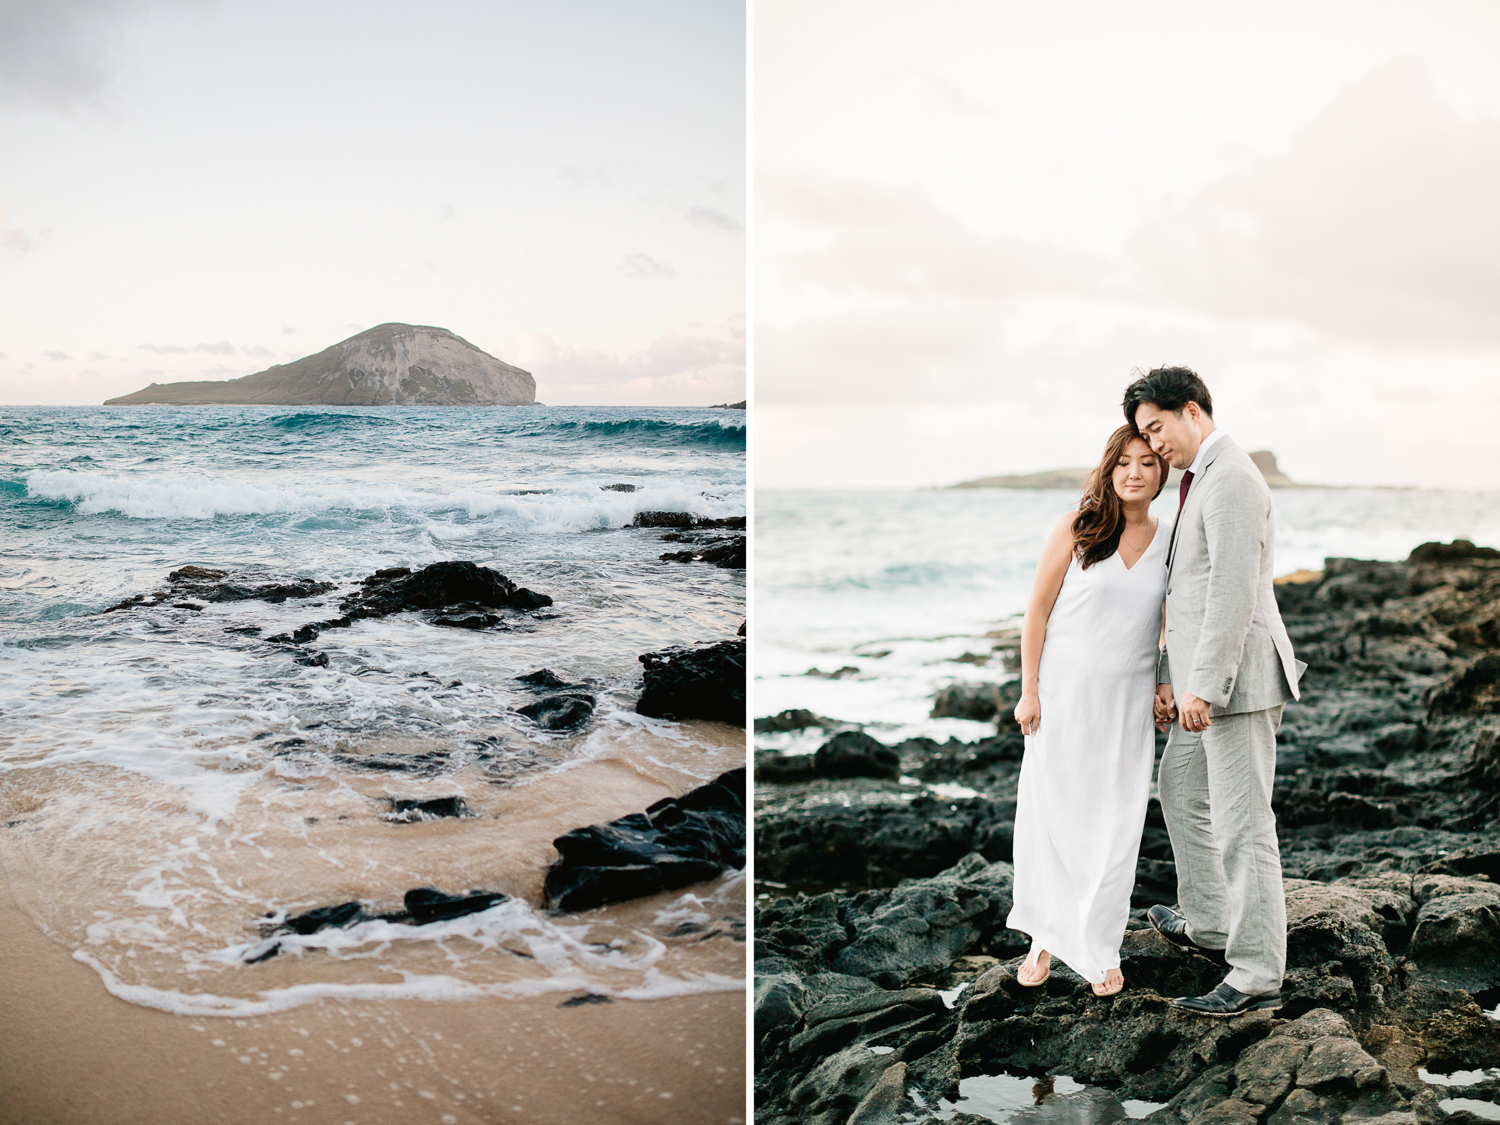 hawaiiweddingphotographer-3045.jpg